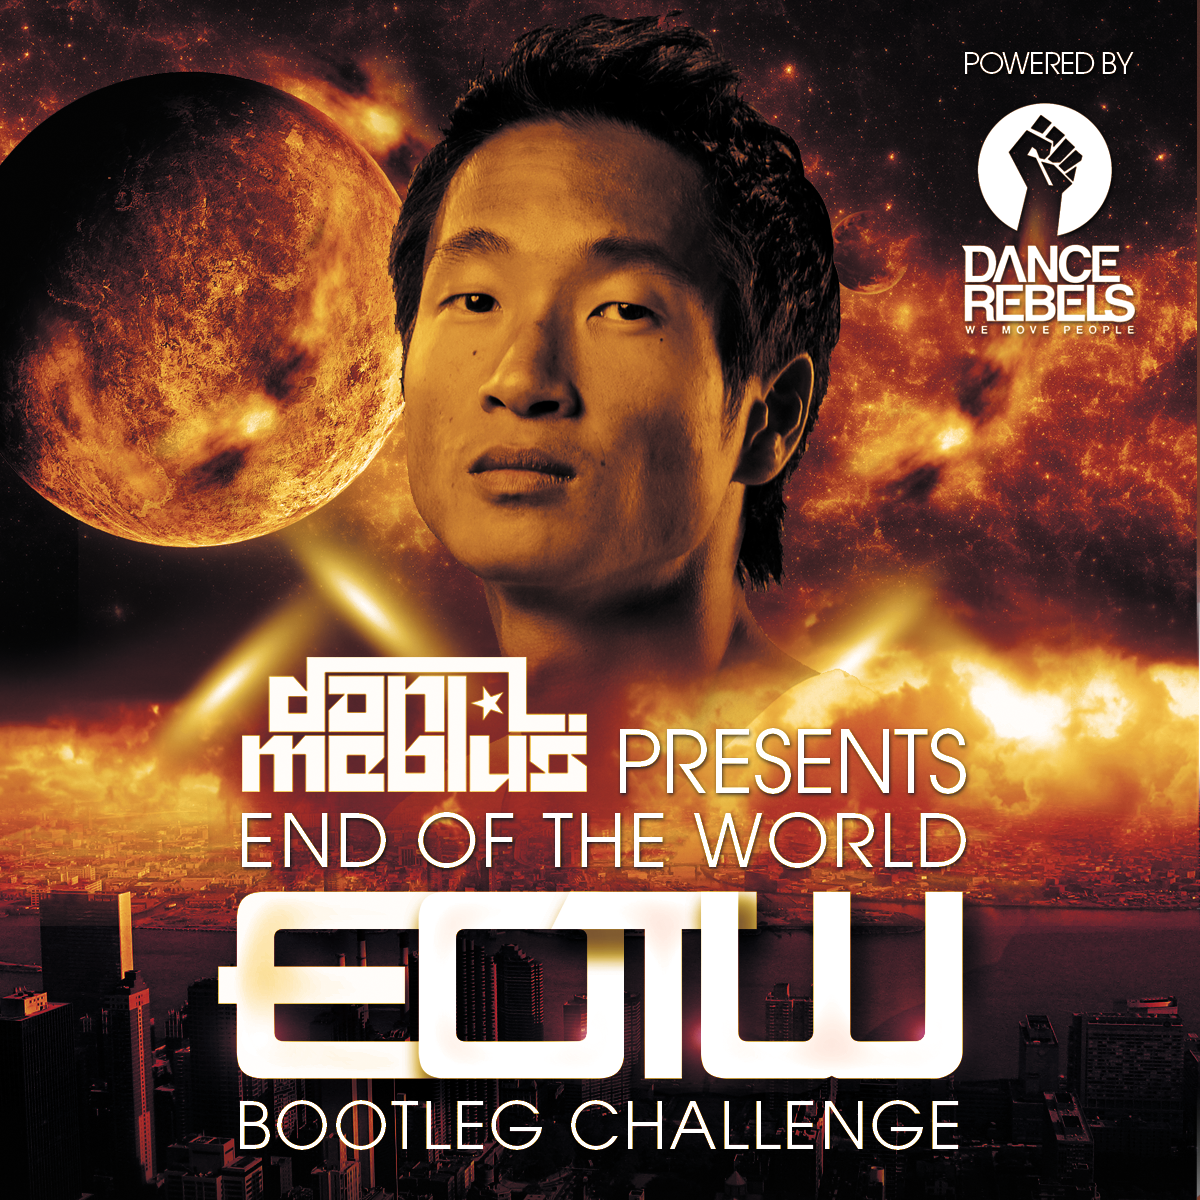 Dani L Mebius Comes With The End Of The World Bootleg Challenge On Dance Rebels